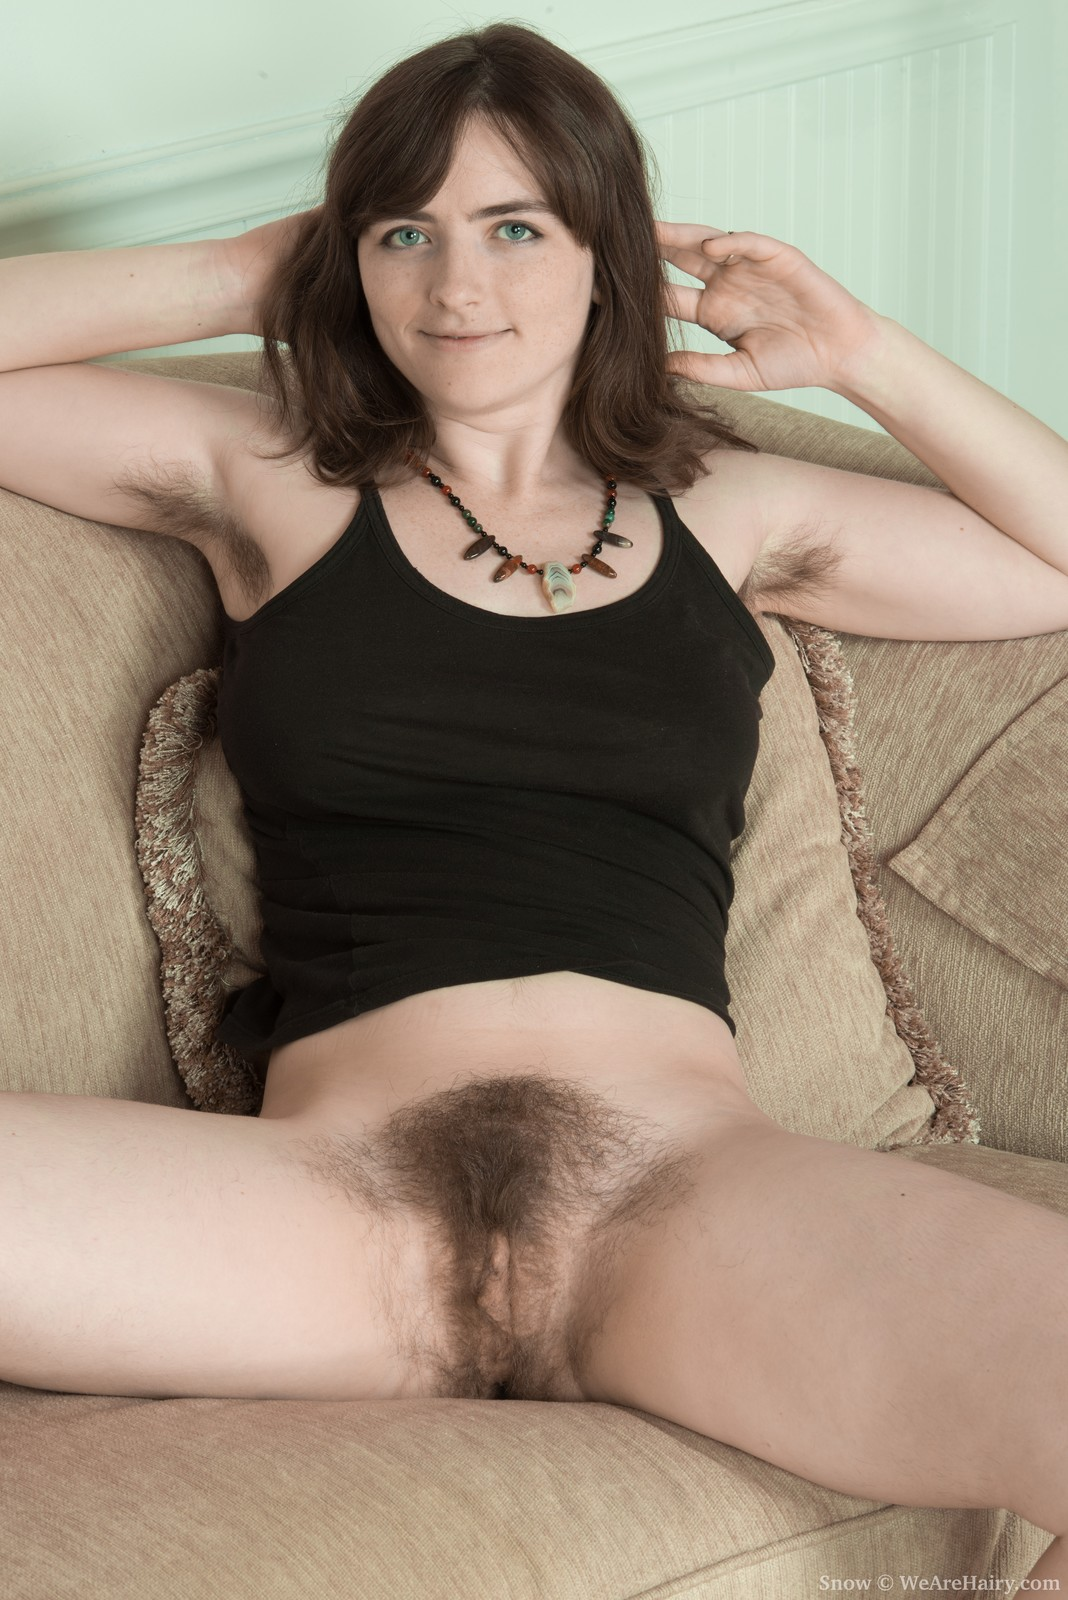 Girl shows off hairy pits